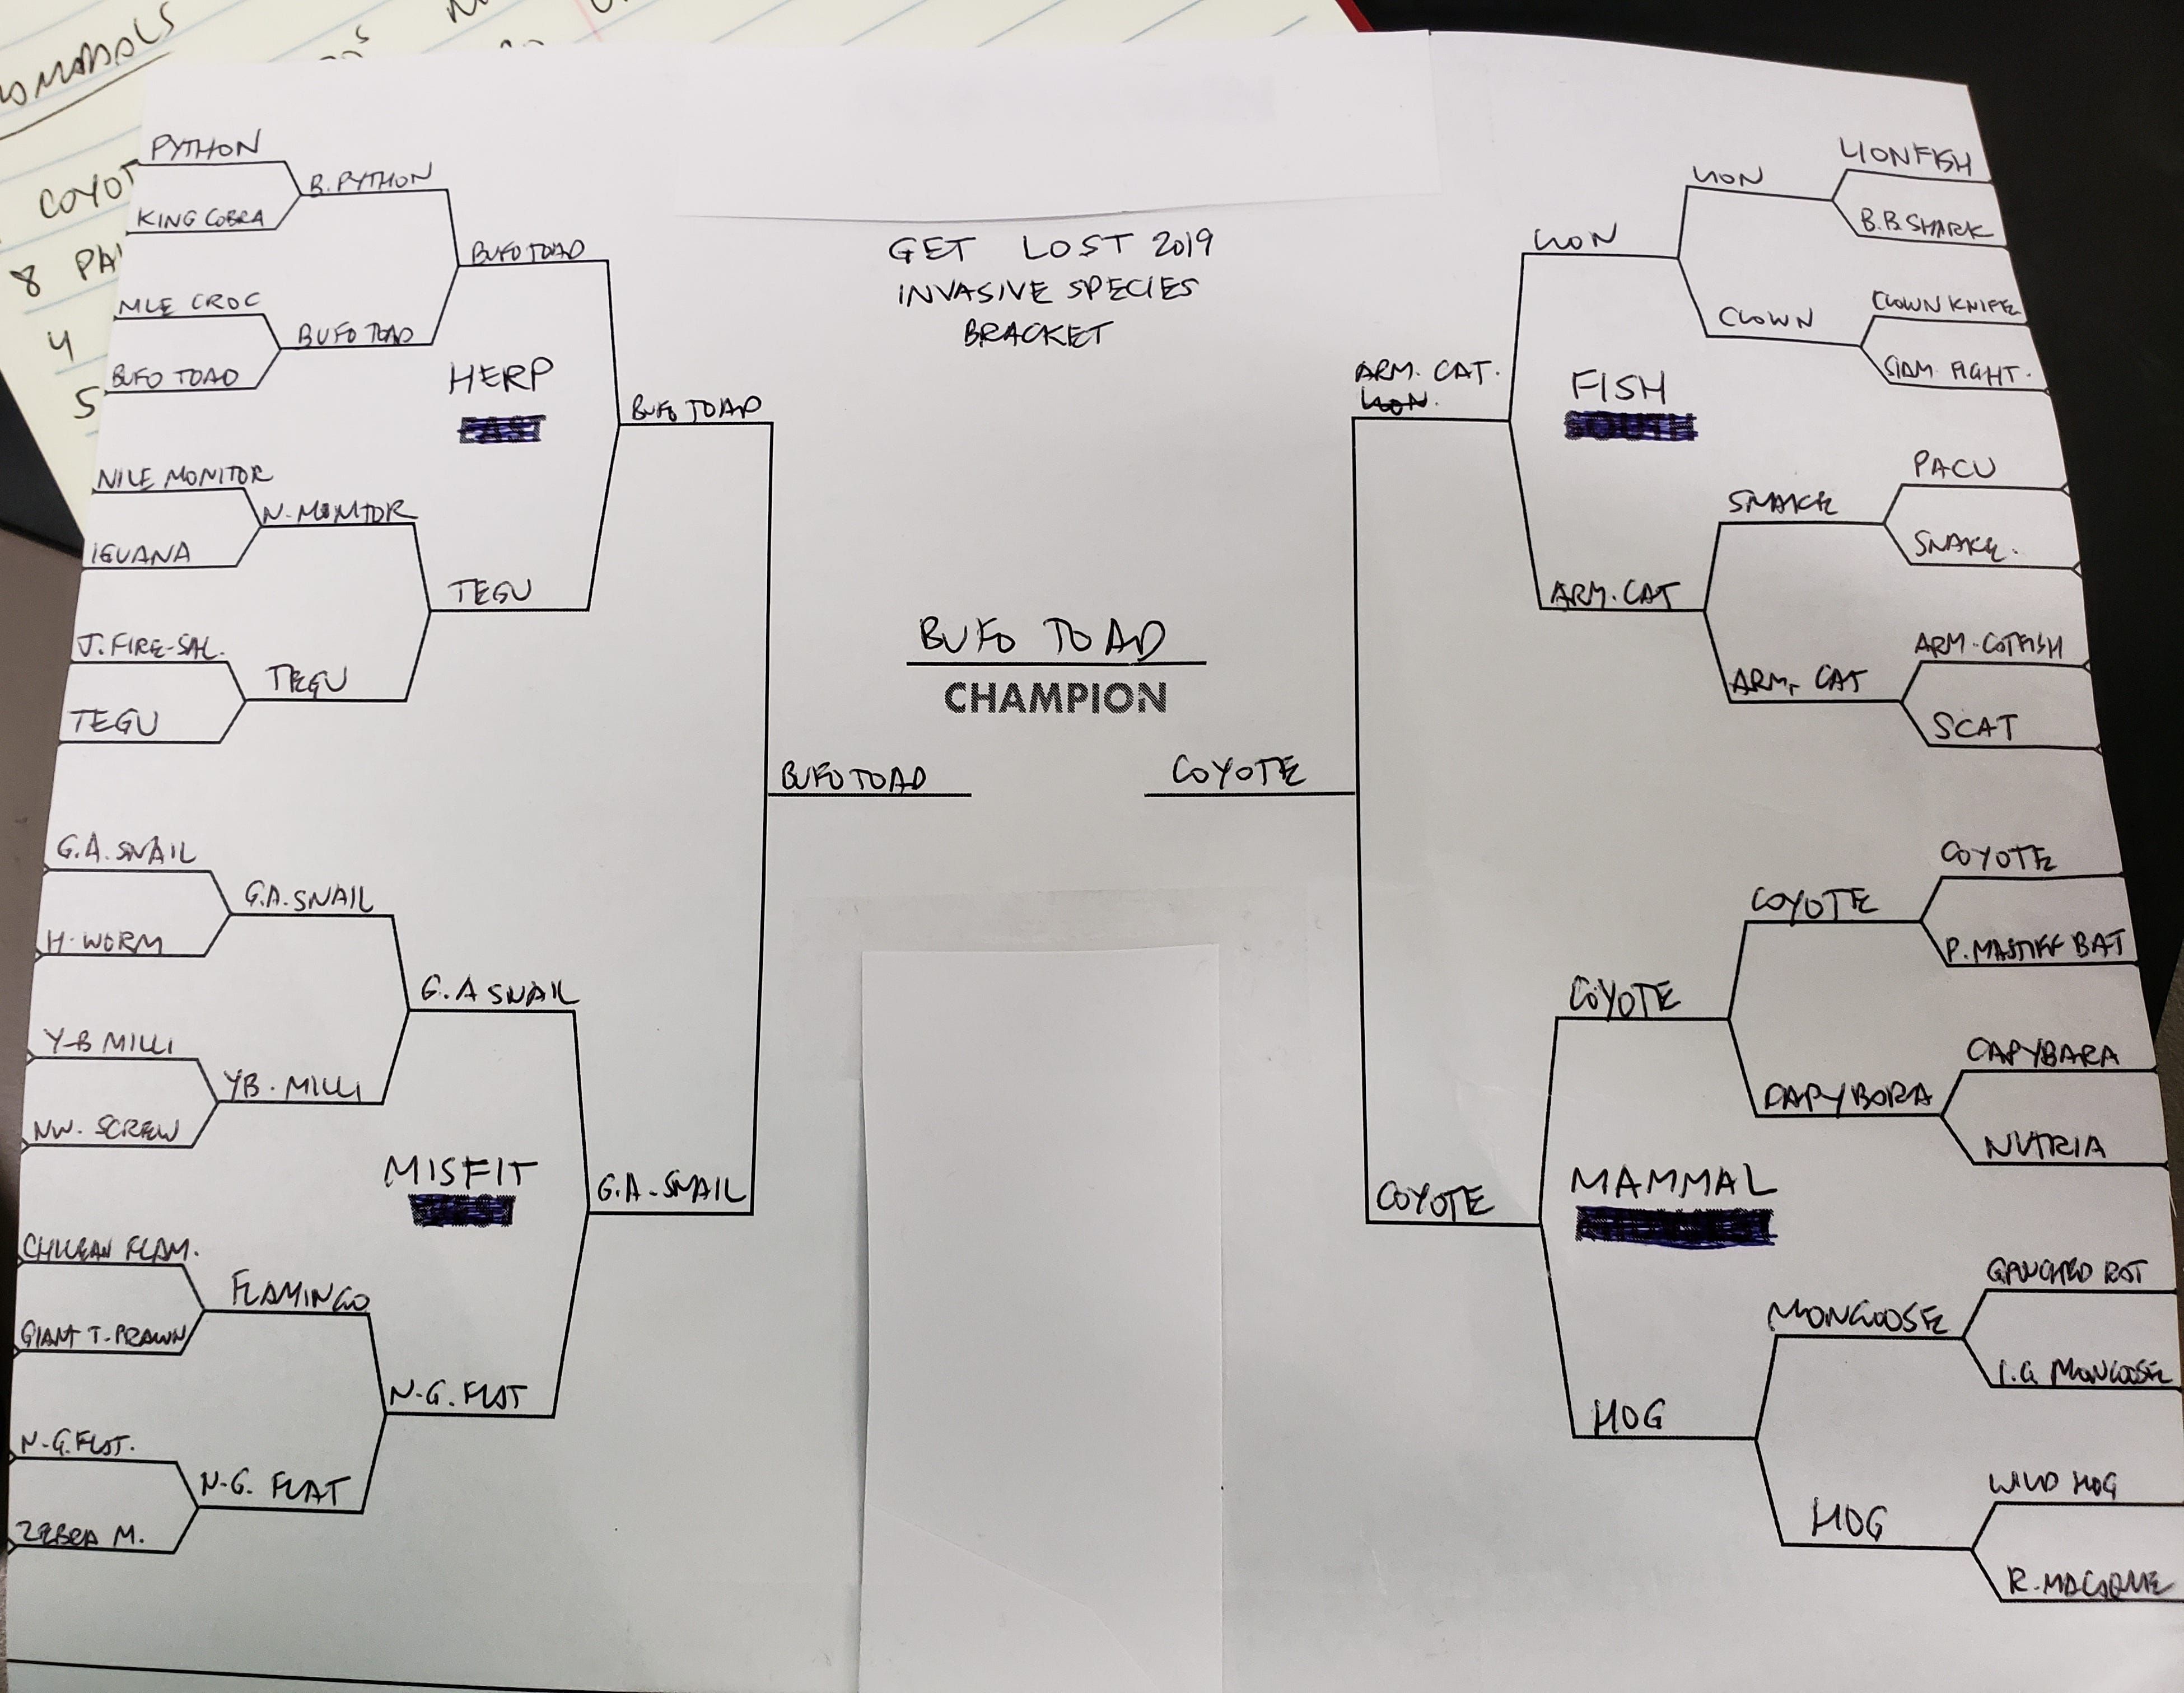 The Florida Invasive Species of the Year 2019 Bracket